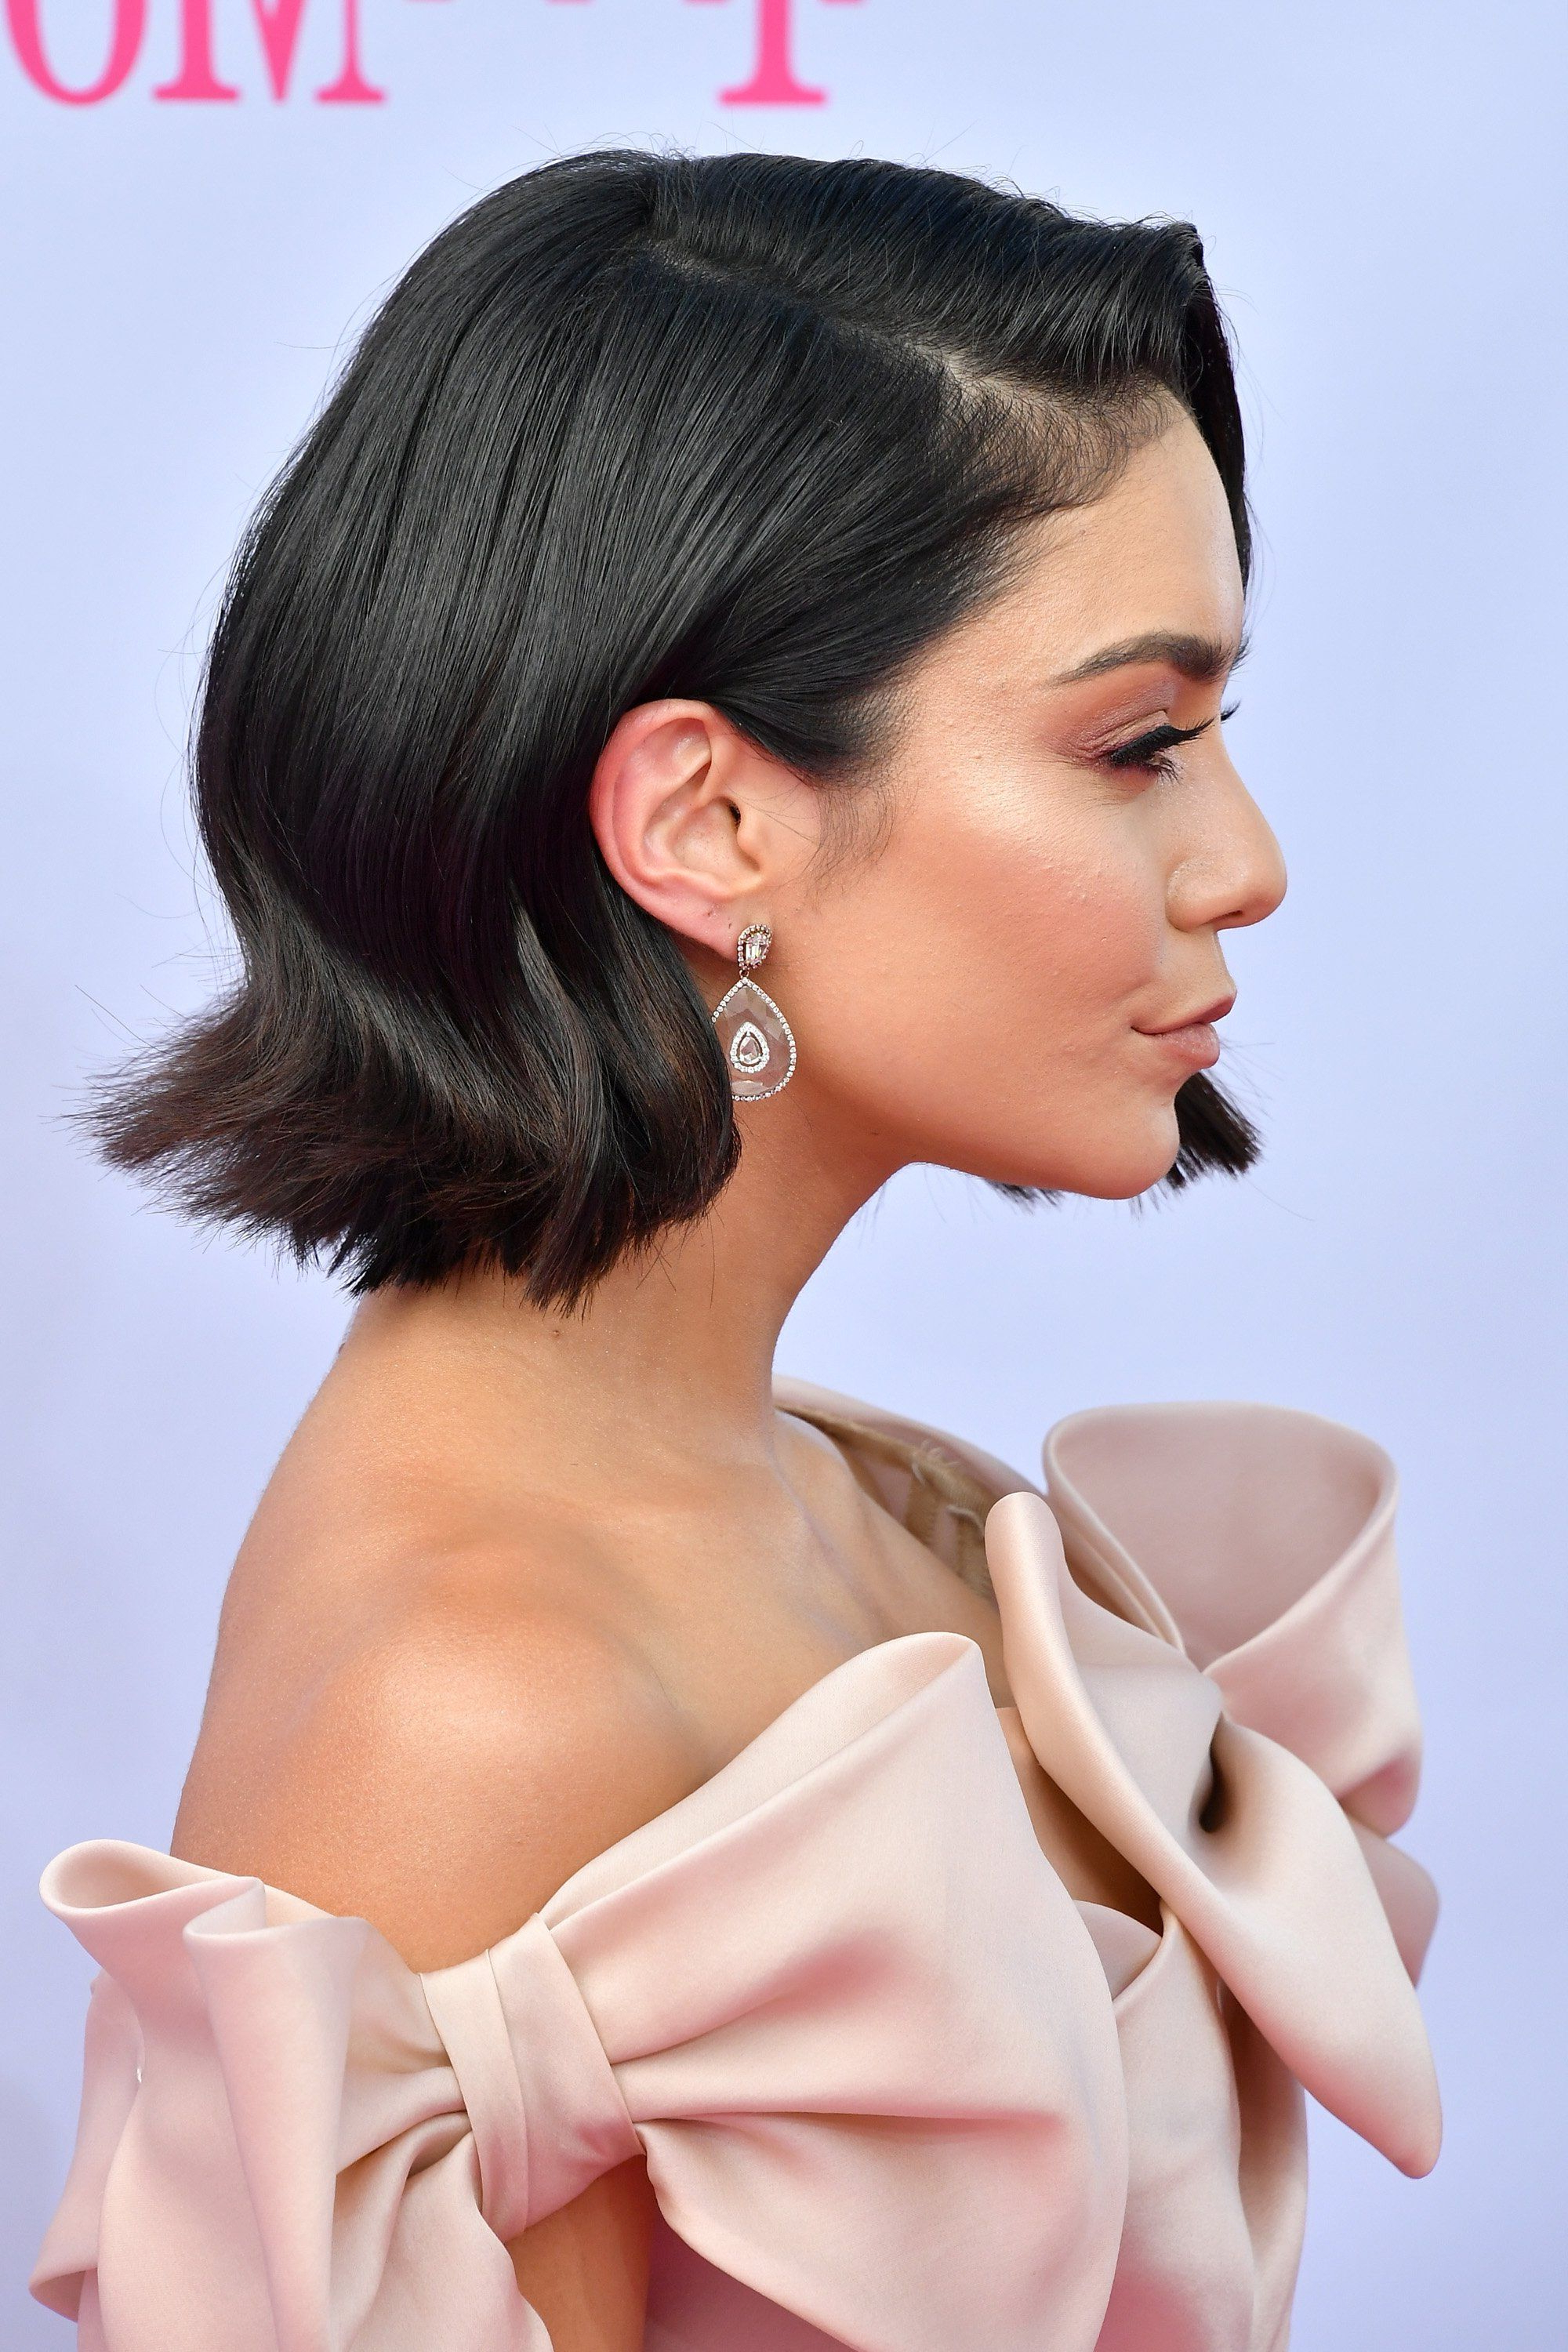 Vanessa Hudgens Shows Off Her Sexy, Short Haircut At The Billboard Within Vanessa Hudgens Short Haircuts (View 5 of 25)